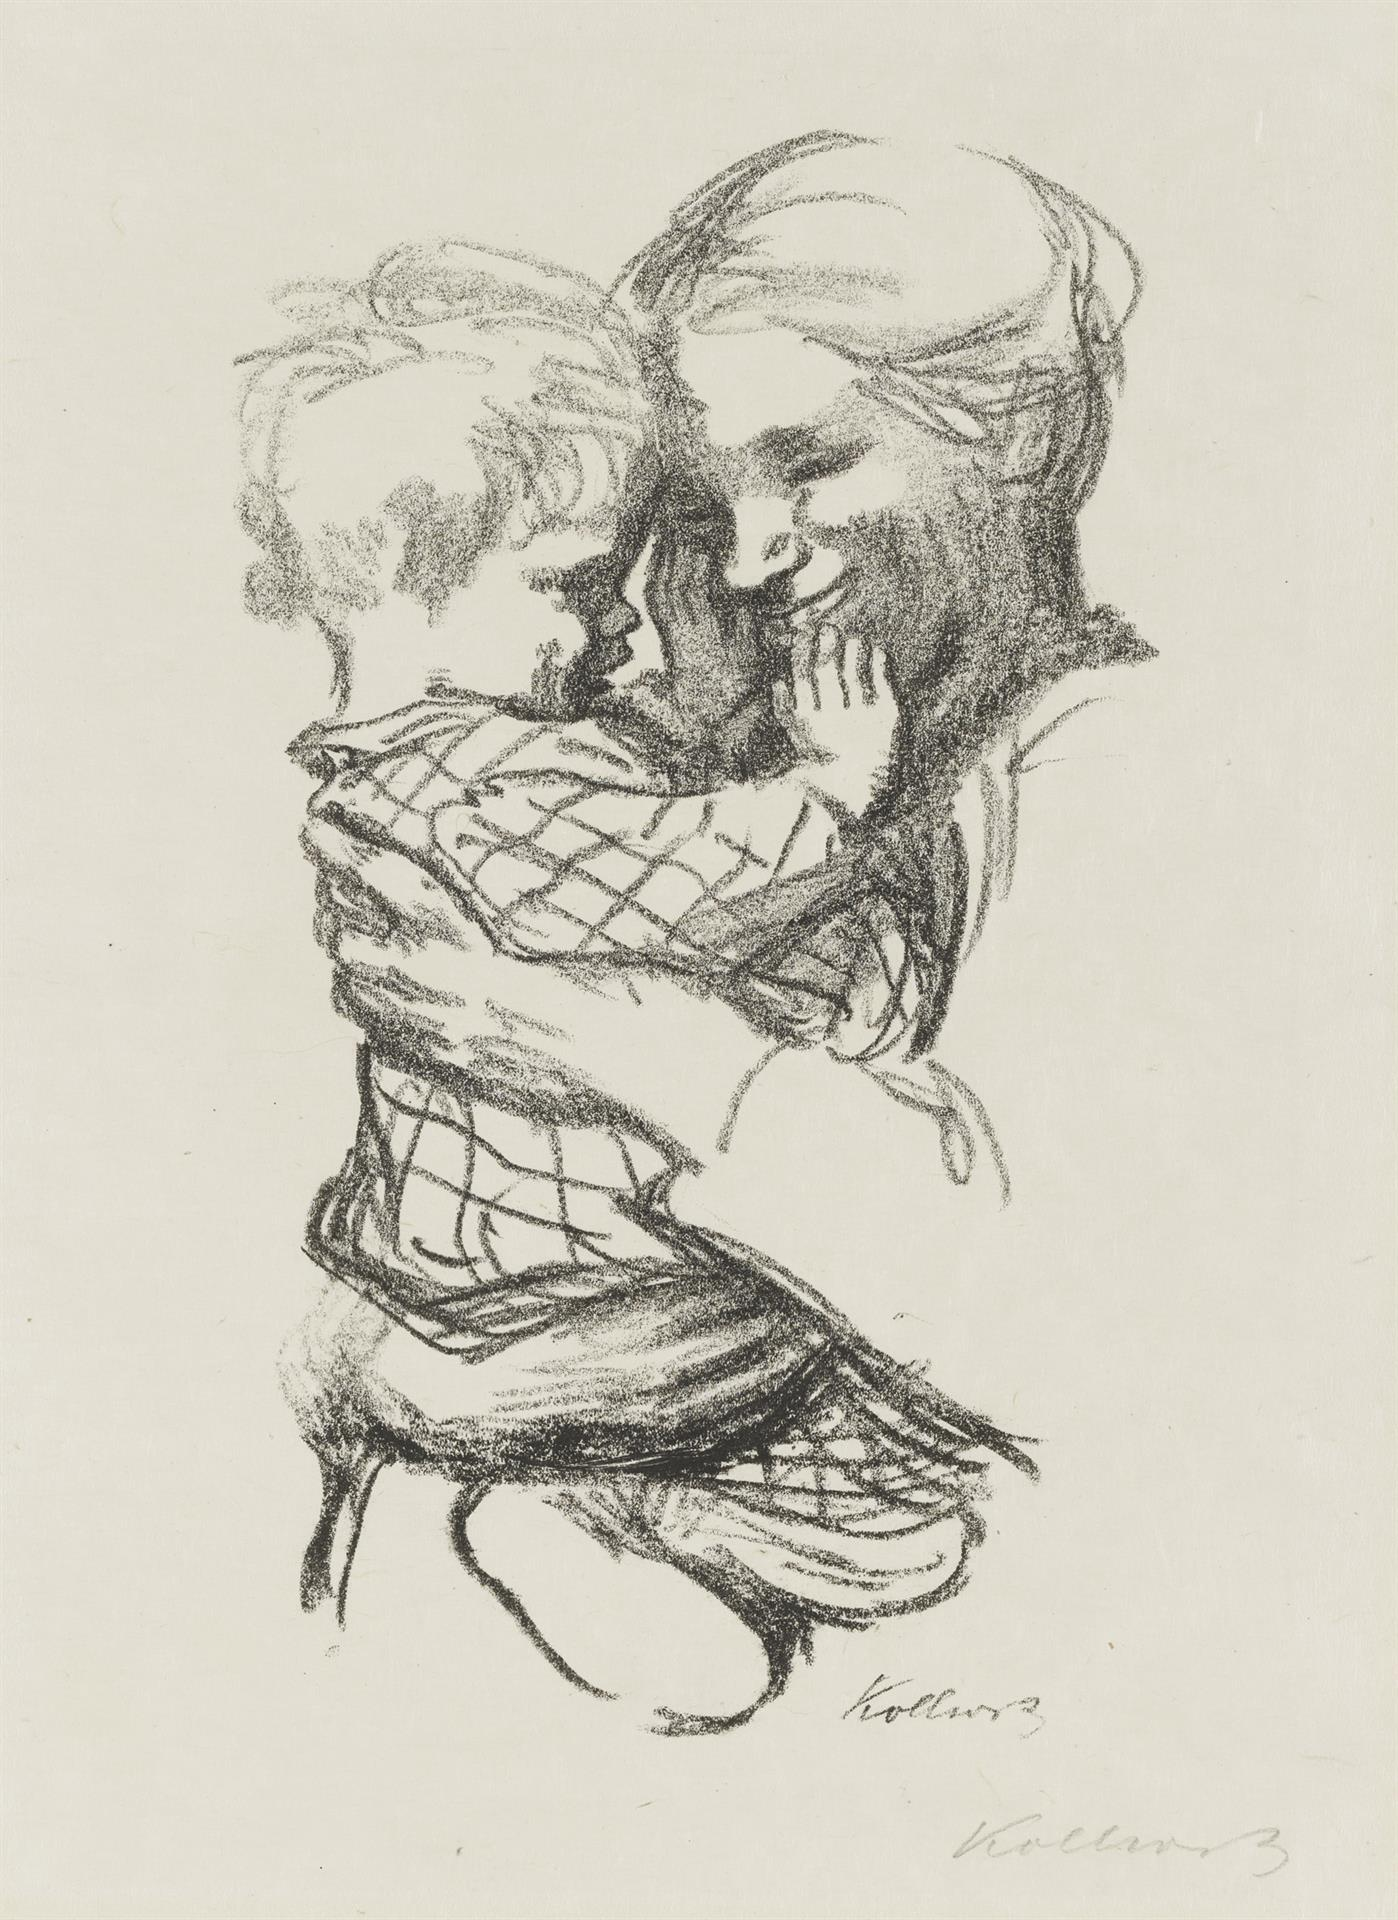 Käthe Kollwitz, Mother with a Child in her Arms, final version, 1916, crayon lithograph (transfer), Kn 136 A II, Cologne Kollwitz Collection © Käthe Kollwitz Museum Köln